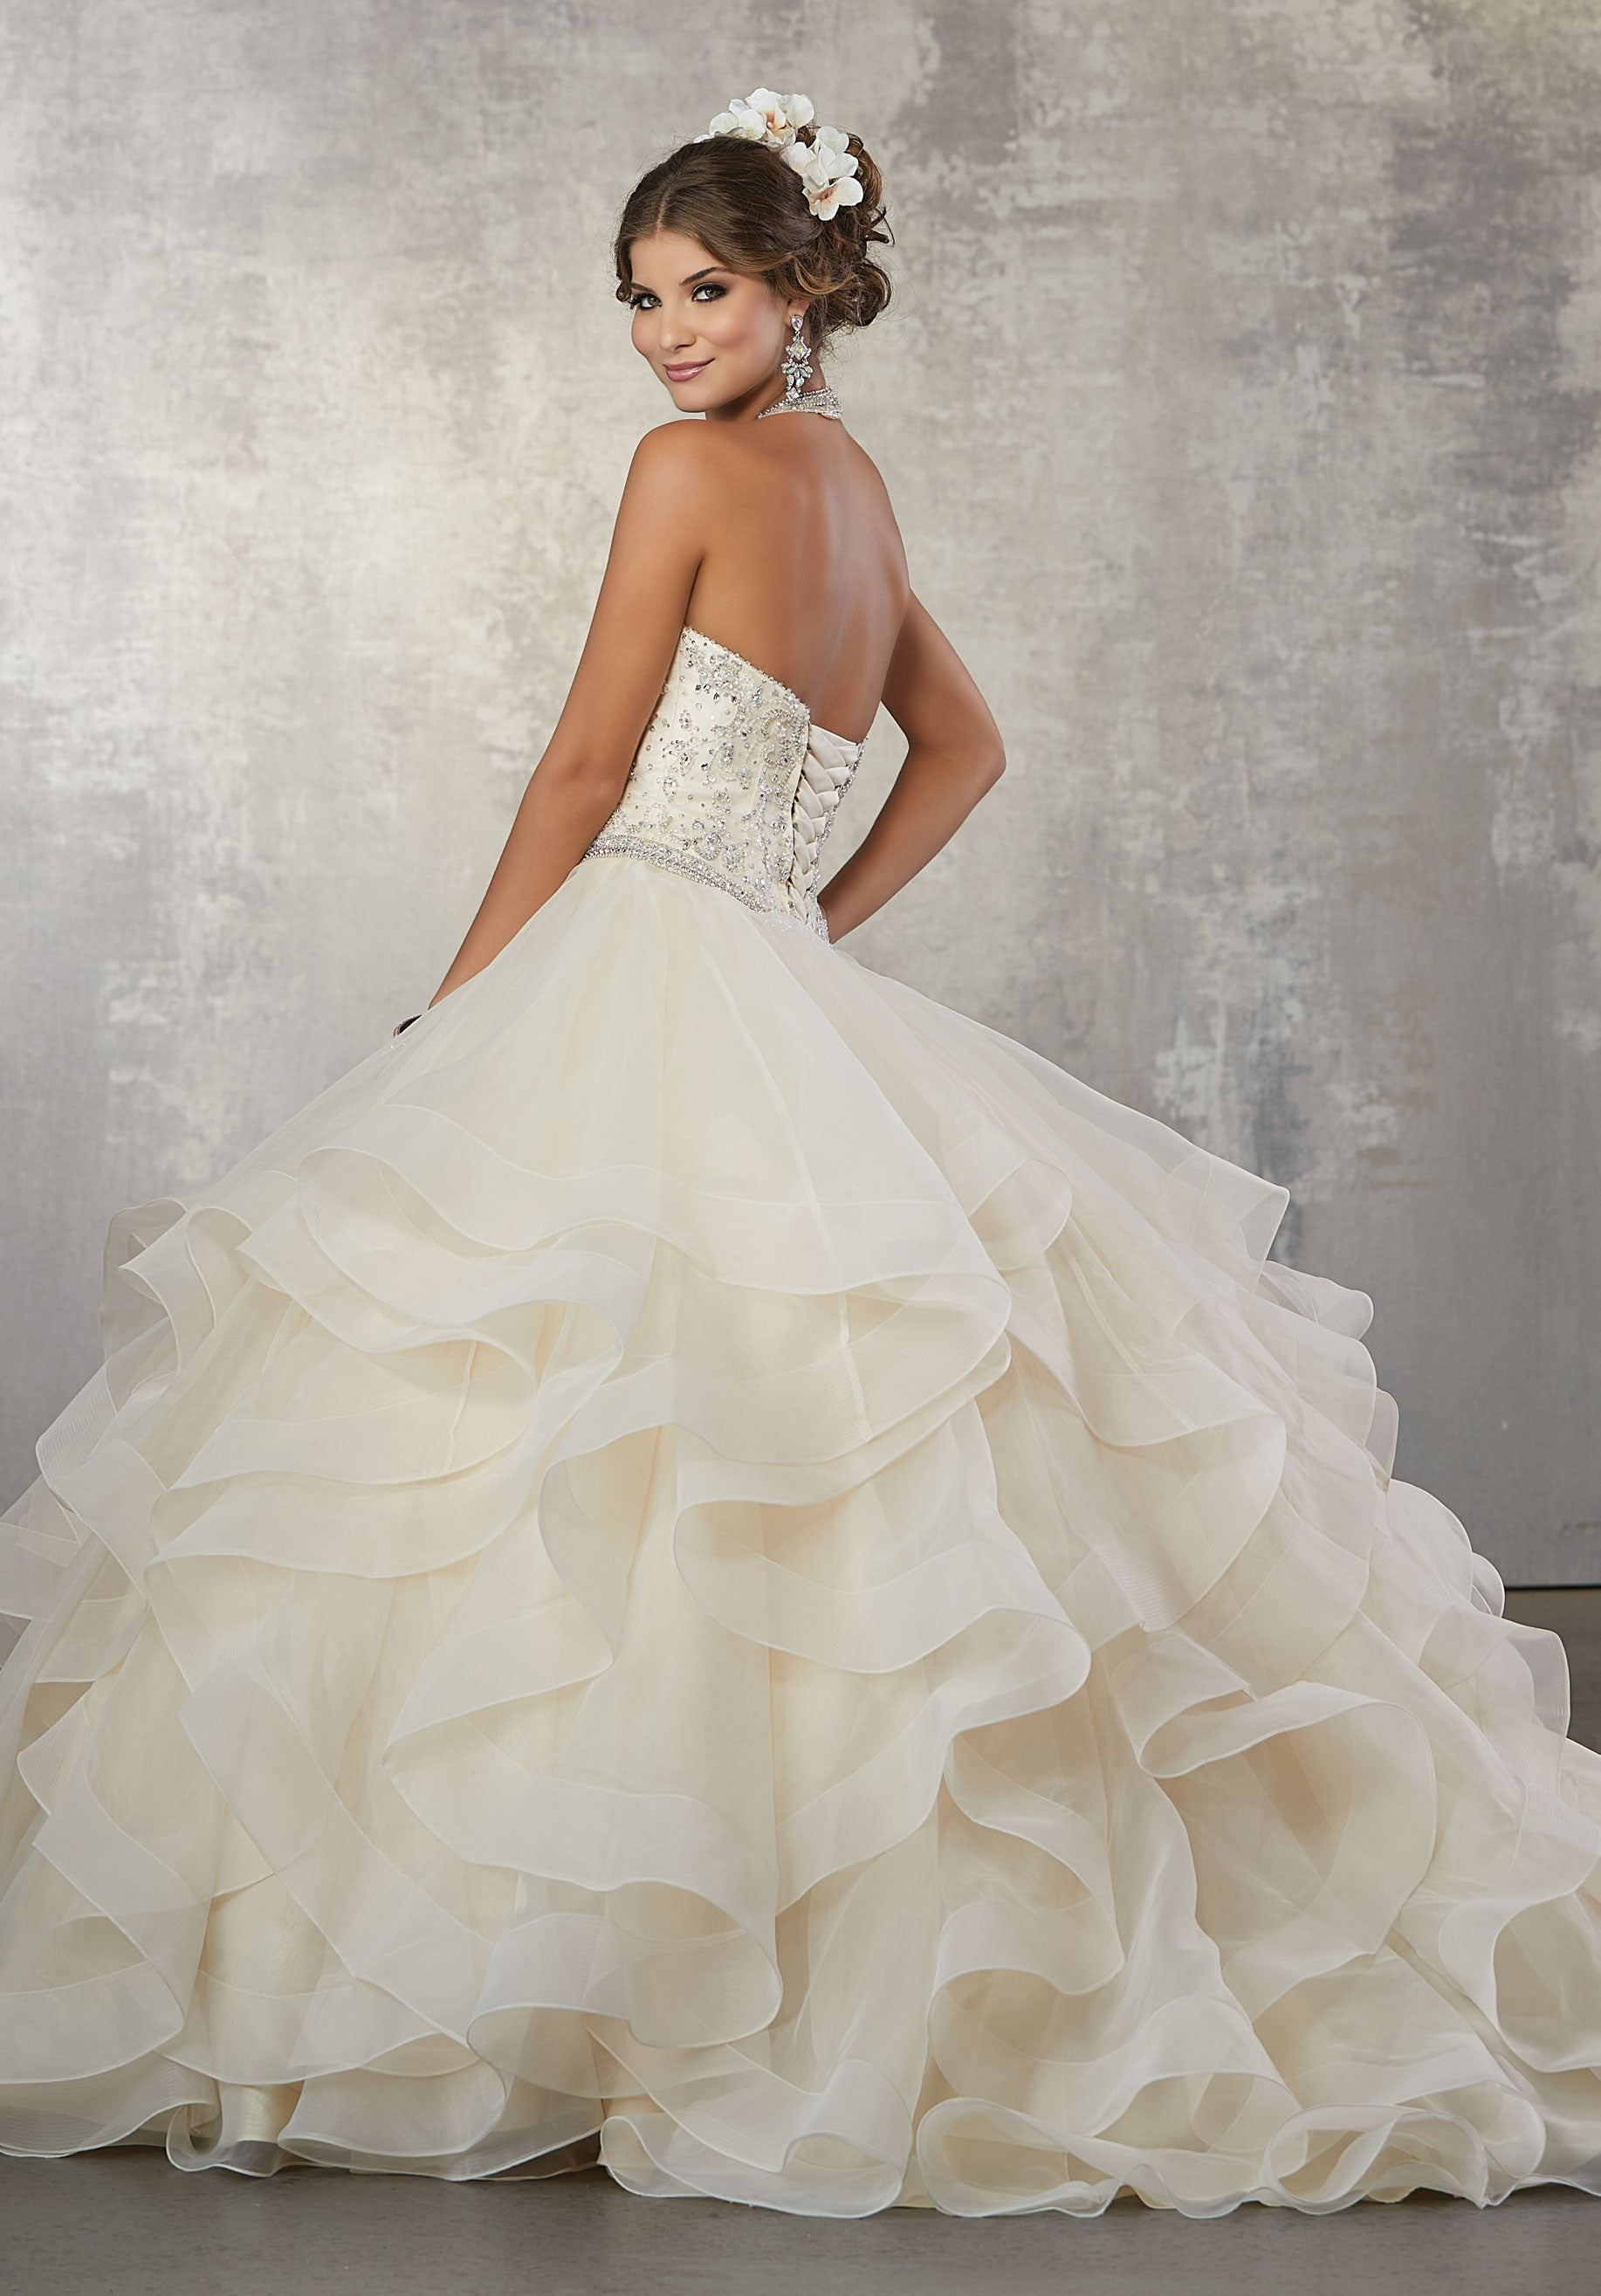 9546dfc3a84 78053 Quinceanera Ballgown with Crystal Beading on a Flounced Organza